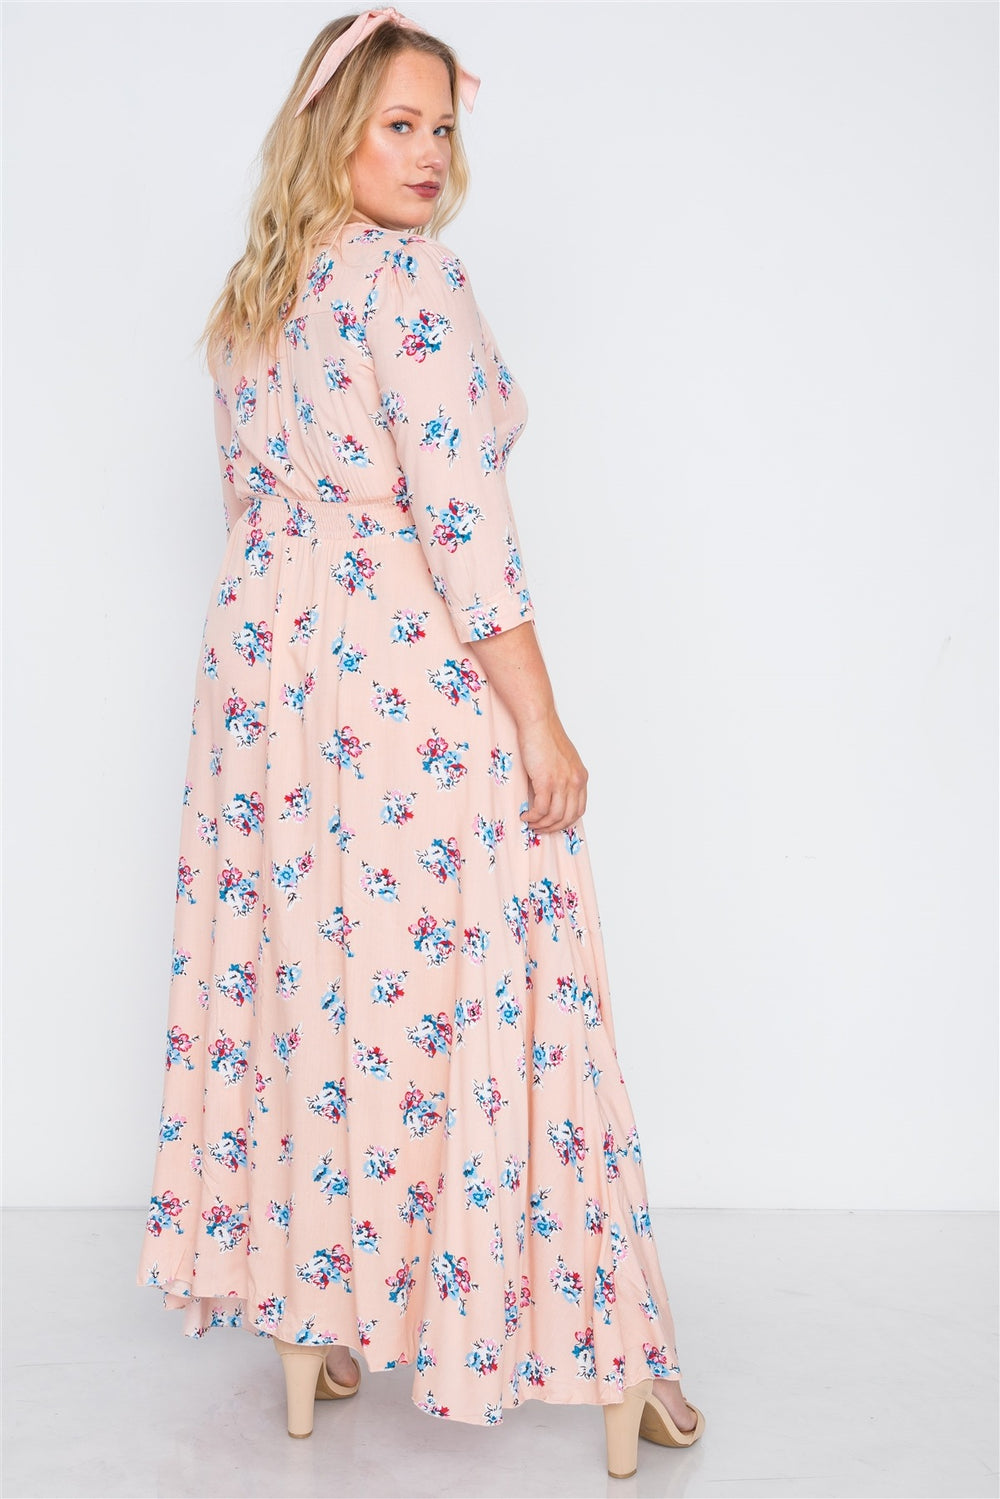 Plus Size Floral _ٍ Summer Maxi Dress With Smocked Waist - Pink - XL